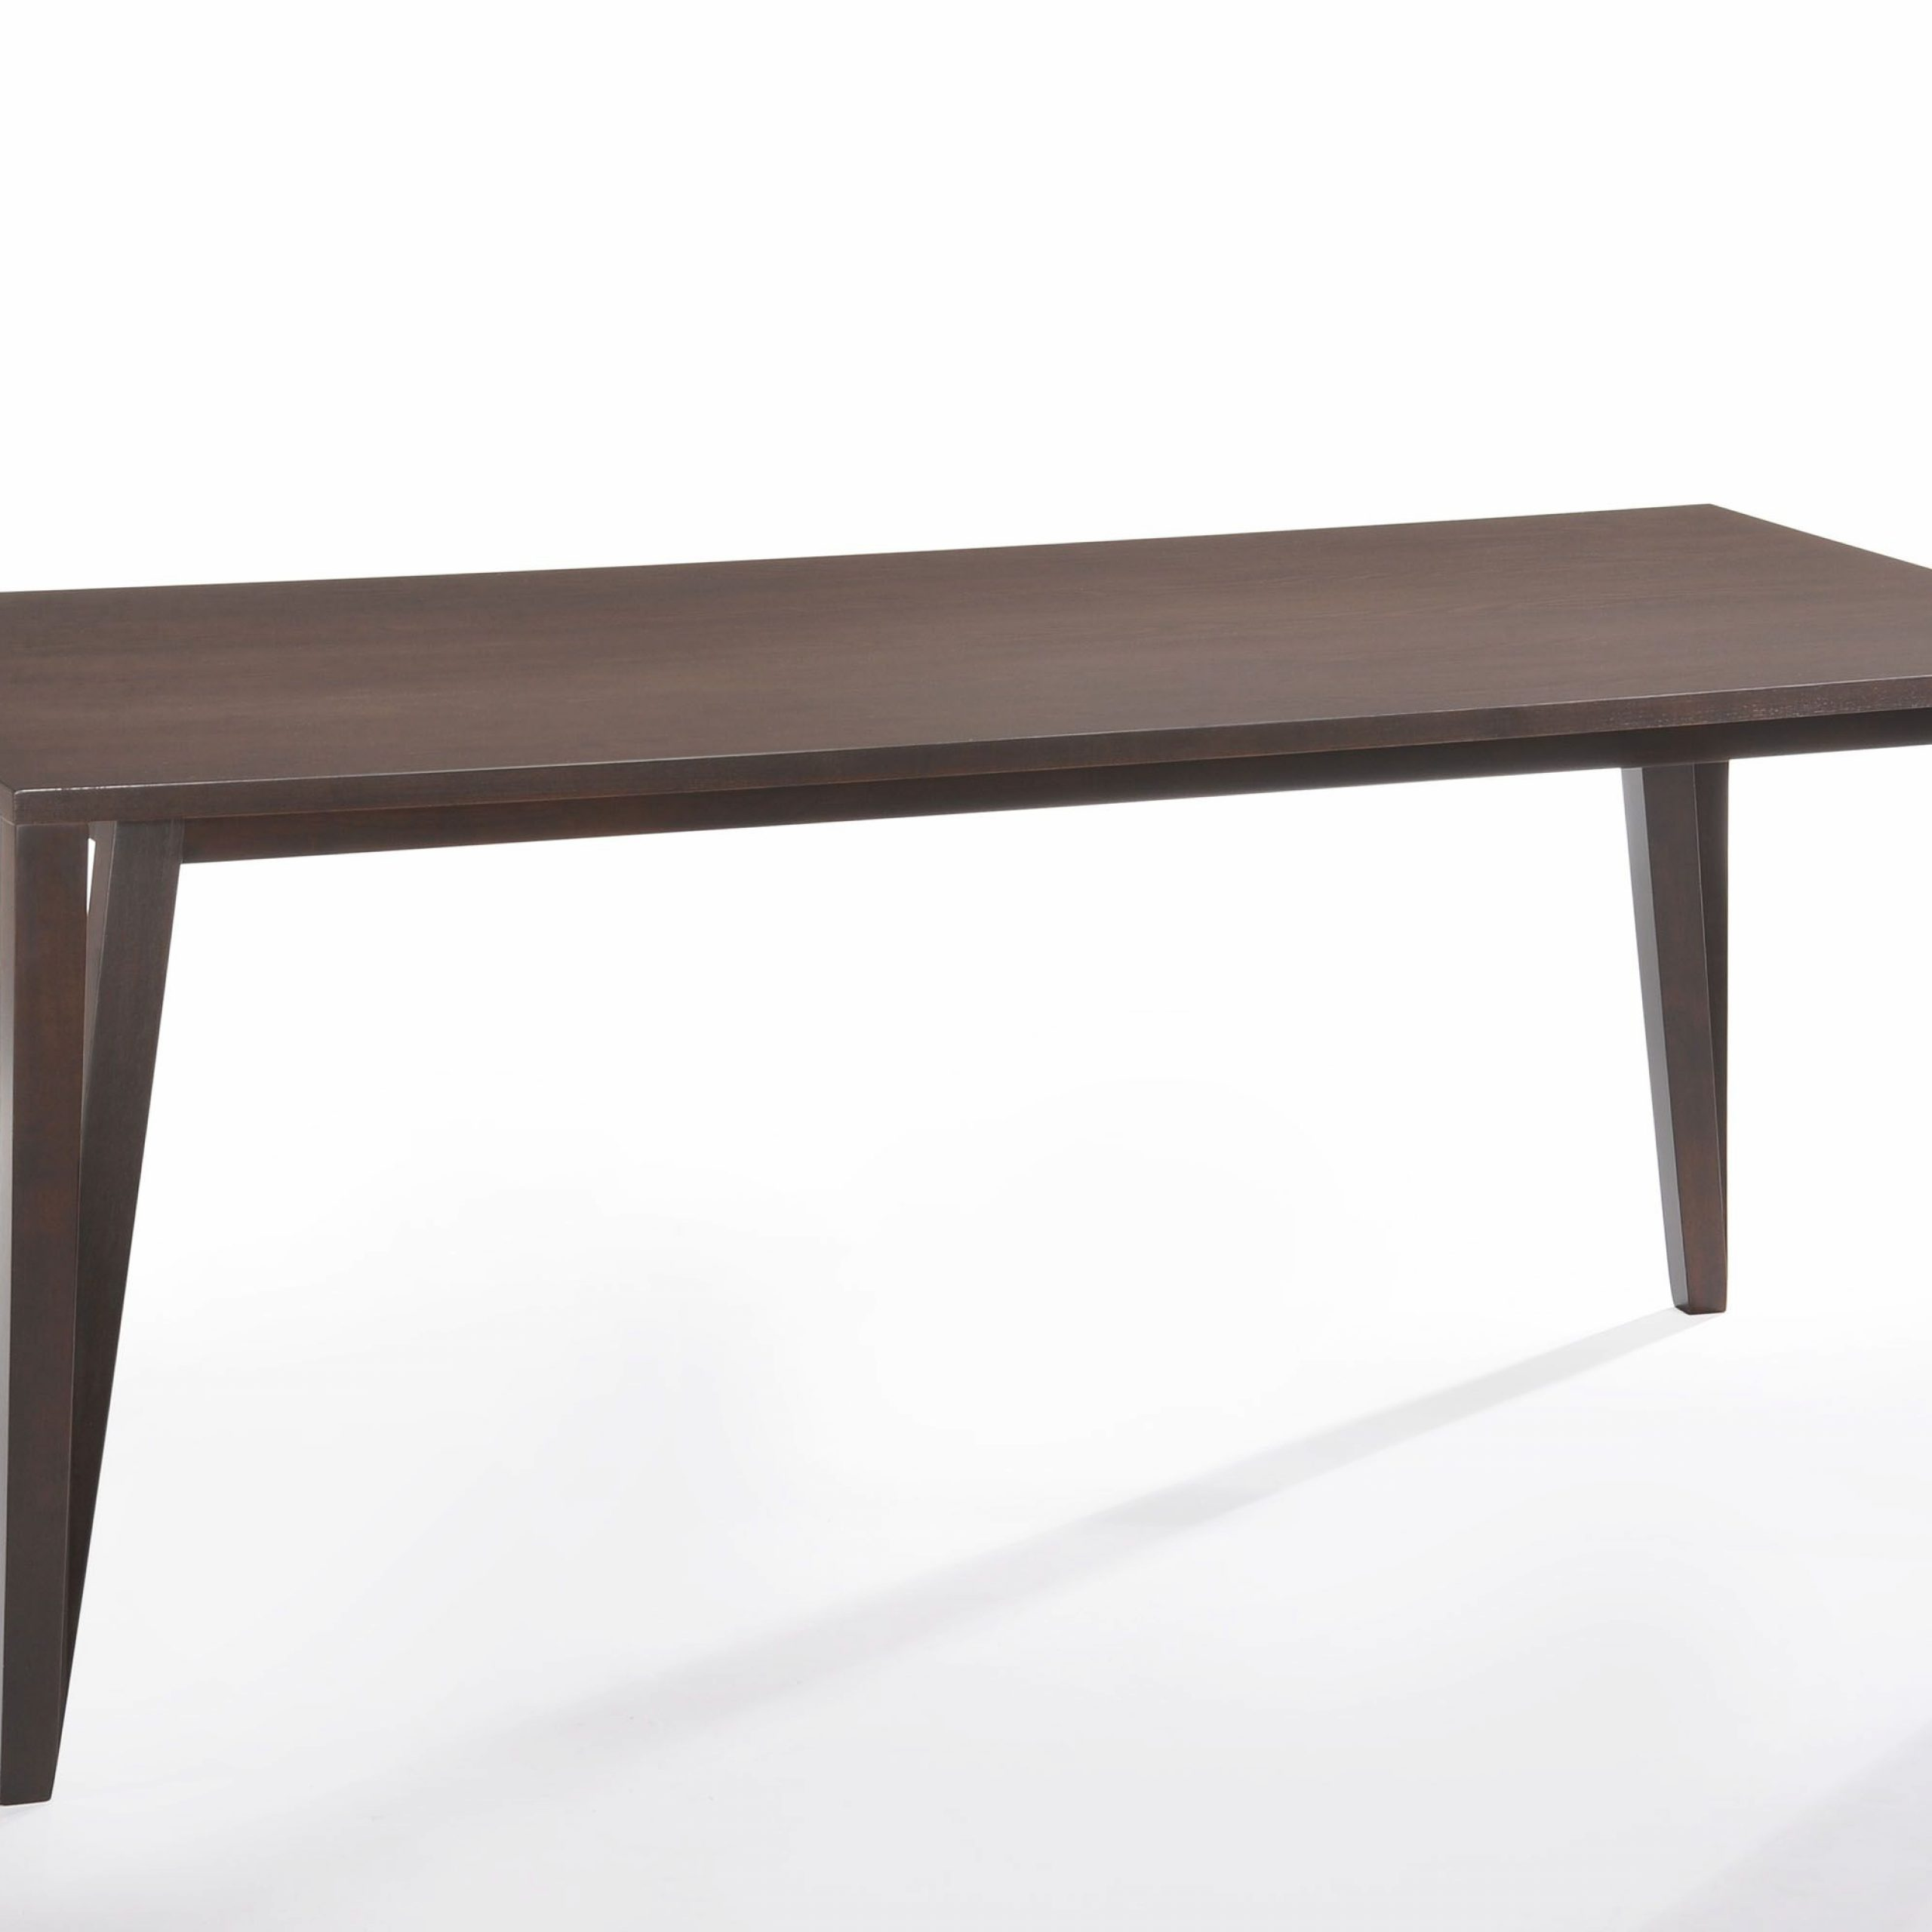 Cafe501 Rubber Wood Rectangle Dining Table Color: Wenge Intended For Best And Newest Wes Counter Height Rubberwood Solid Wood Dining Tables (View 8 of 15)